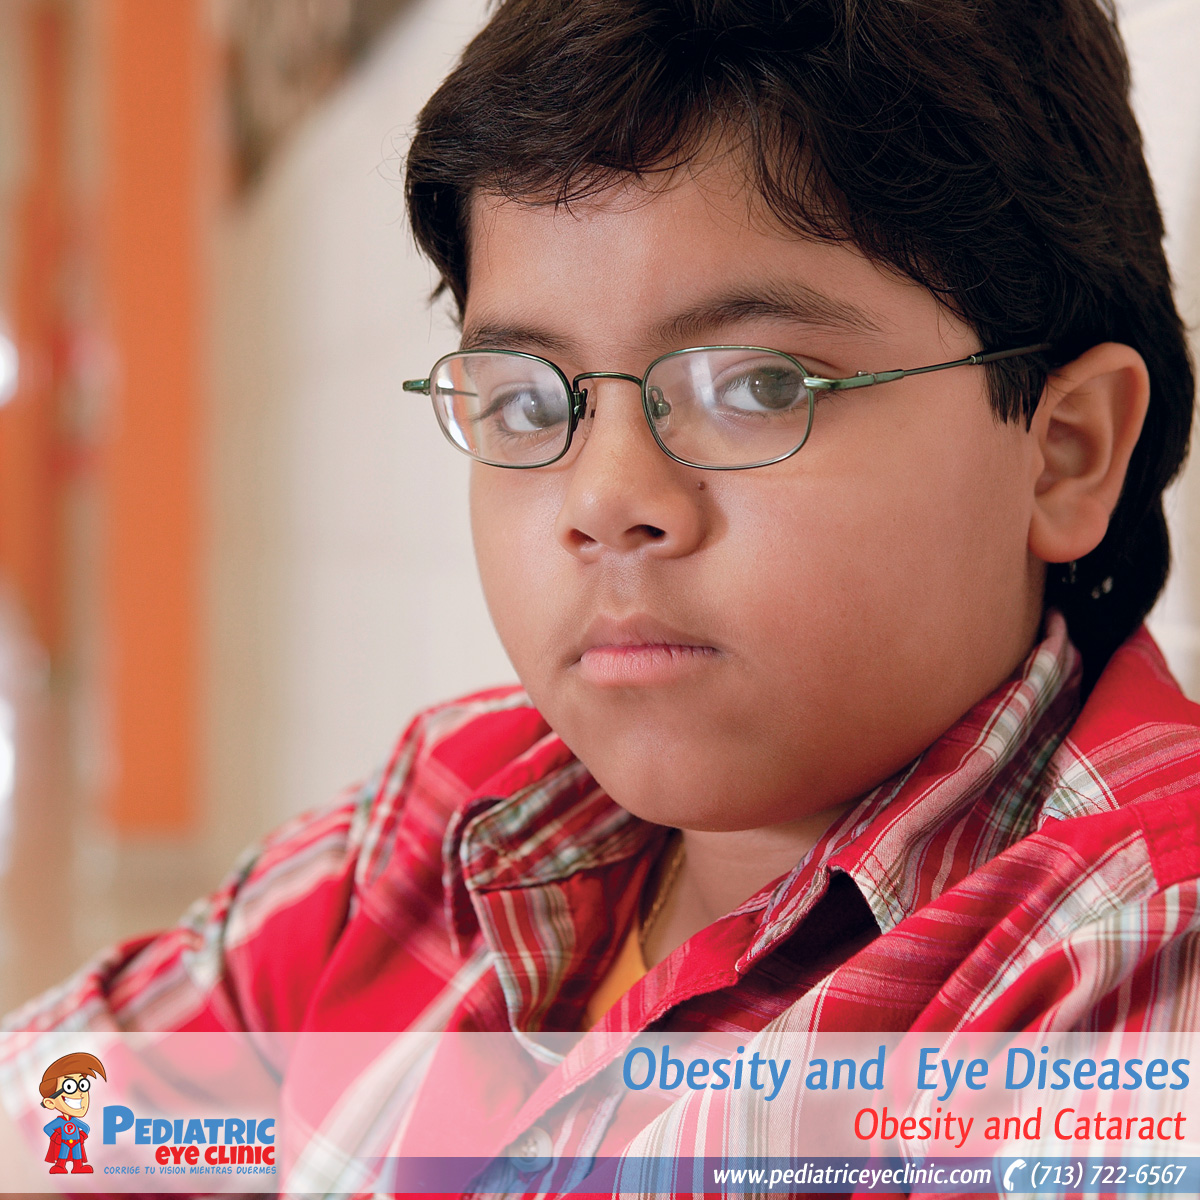 09-obesity-and-eye-diseases